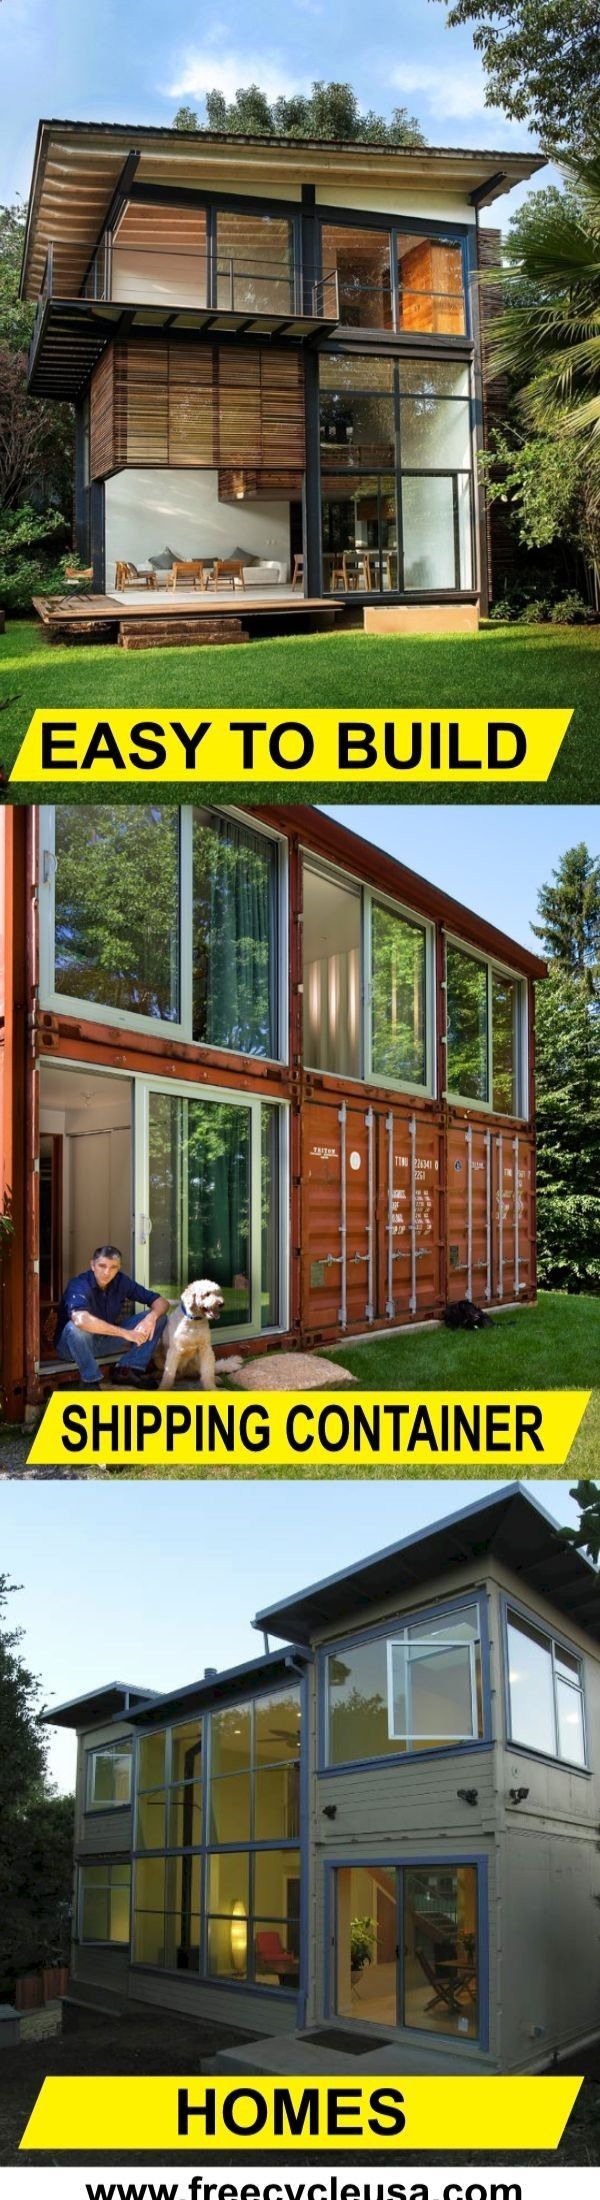 Lean How To Build A Shipping Container Home With The Best Plans